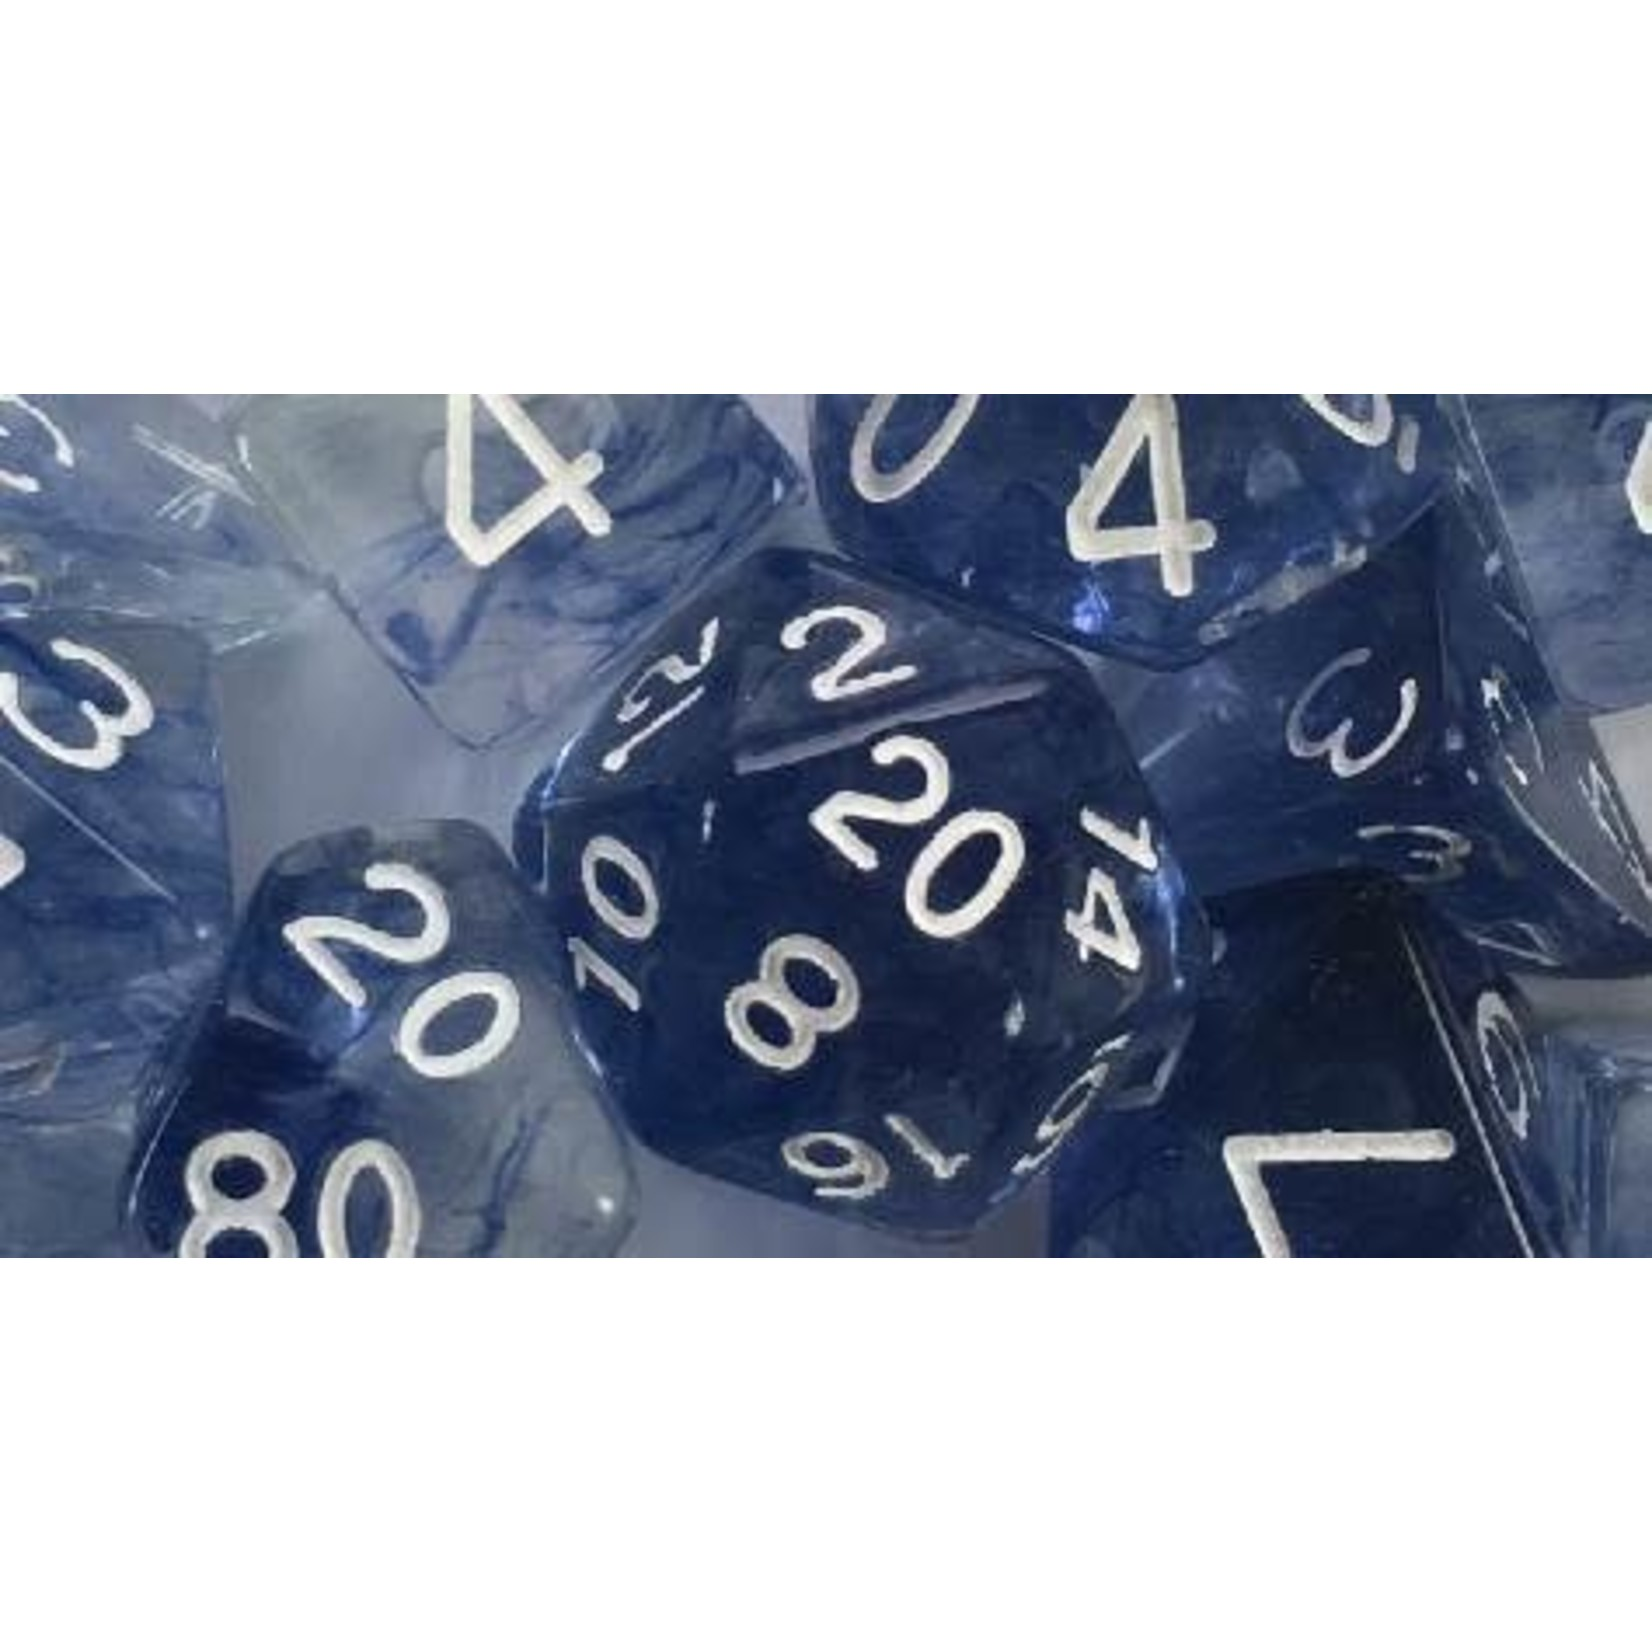 Roll 4 Initiative Polyhedral Dice: Diffusion Blue Ink White- Set of 7